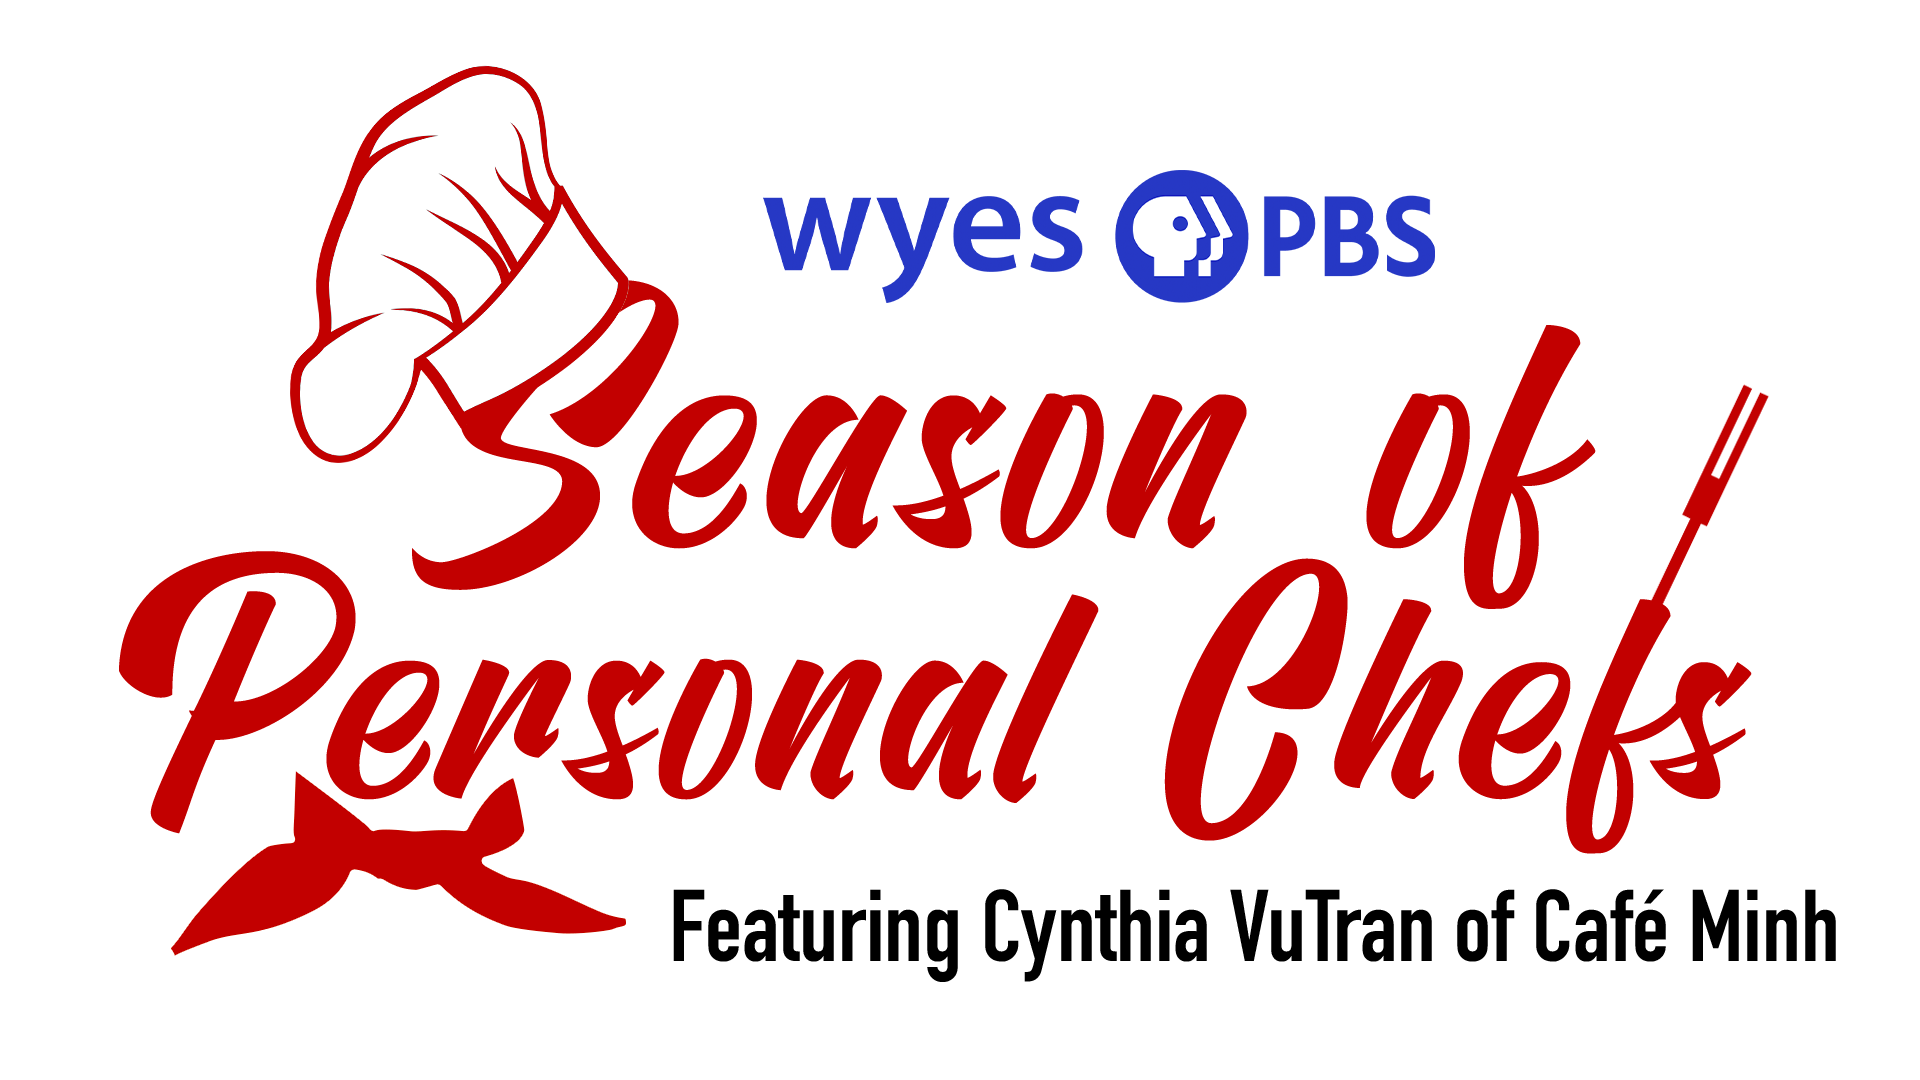 WYES Season of Personal Chefs